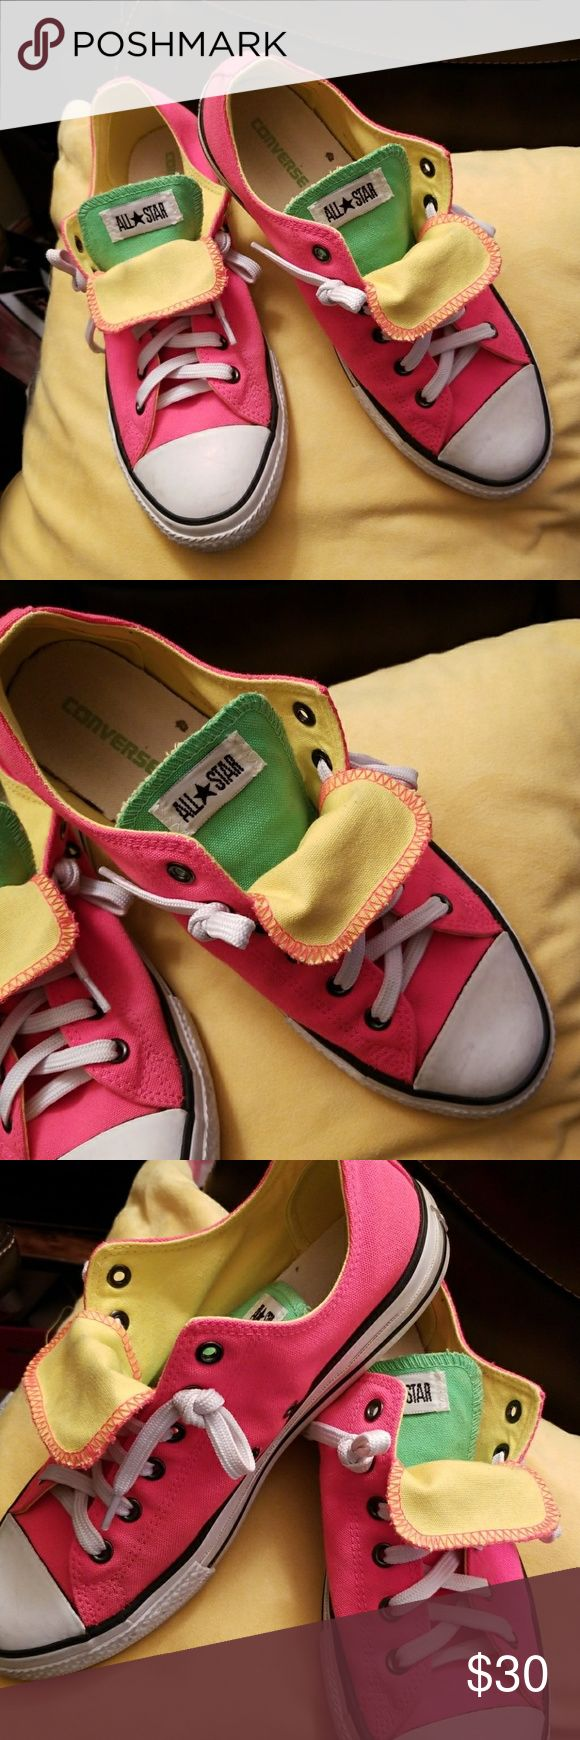 CONVERSE DOUBLE TONGUE SNEAKERS Neon pink sneakers with green and yellow tongue. Excellent pre owned condition. Size says 8 but fits more like 8.5 Converse Shoes Sneakers